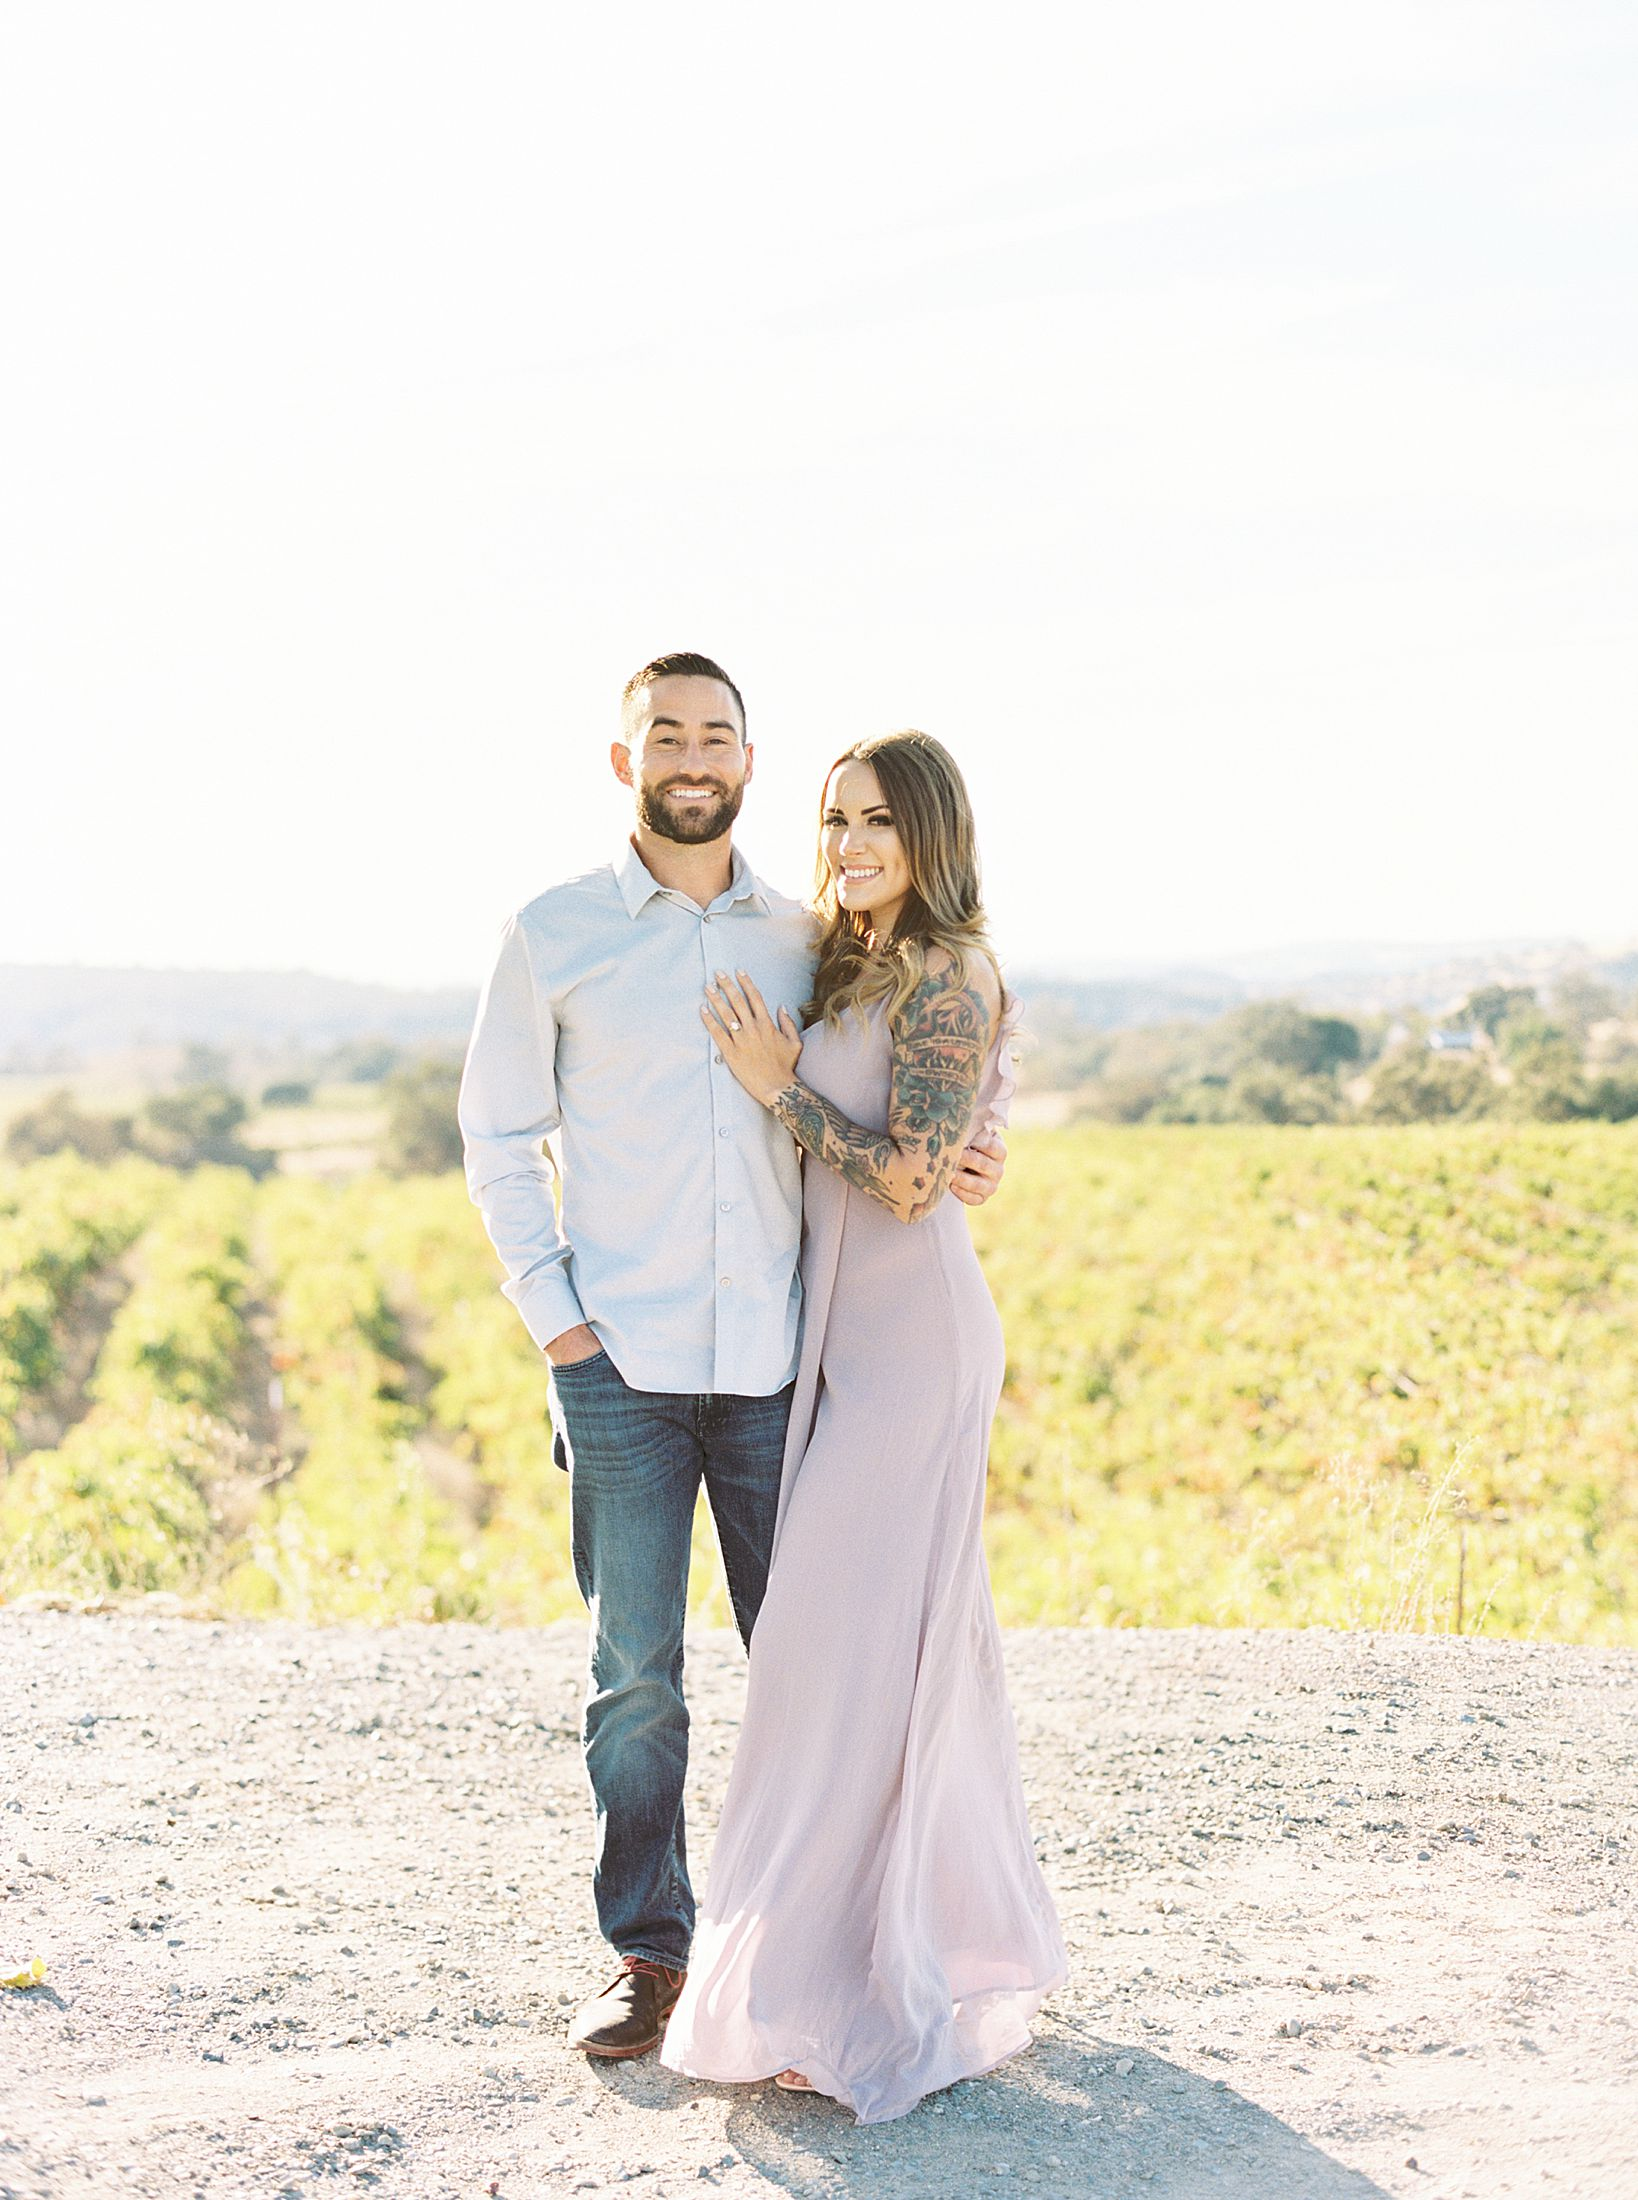 Helwig Winery Engagement Session - Steffanie and Rich - Jenn Robirds Events - Ashley Baumgartner - Sacramento Wedding Photographer - Private Estate Wedding Photographer - Helwig WInery Wedding_0078.jpg